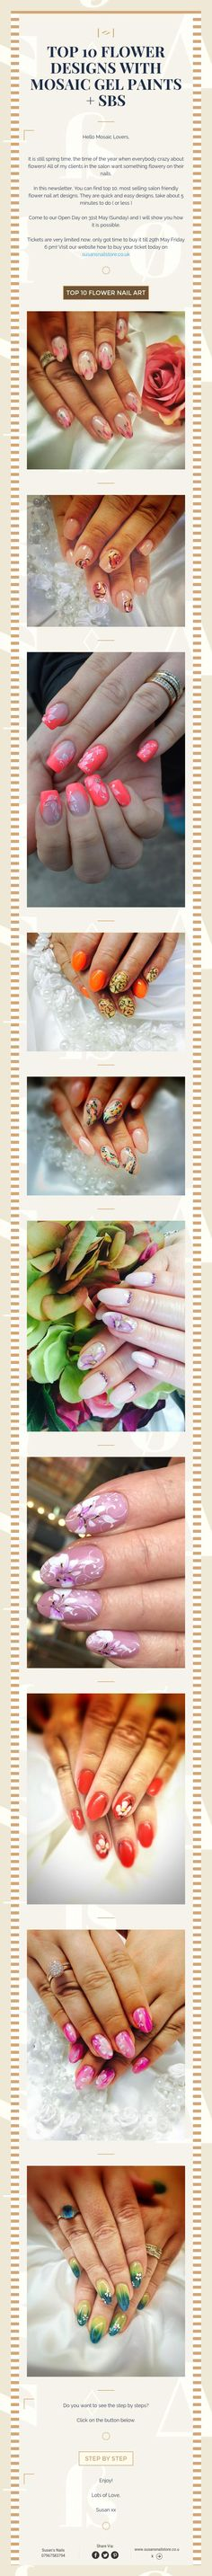 Top 10 flower designs with mosaic gel paints   sbs